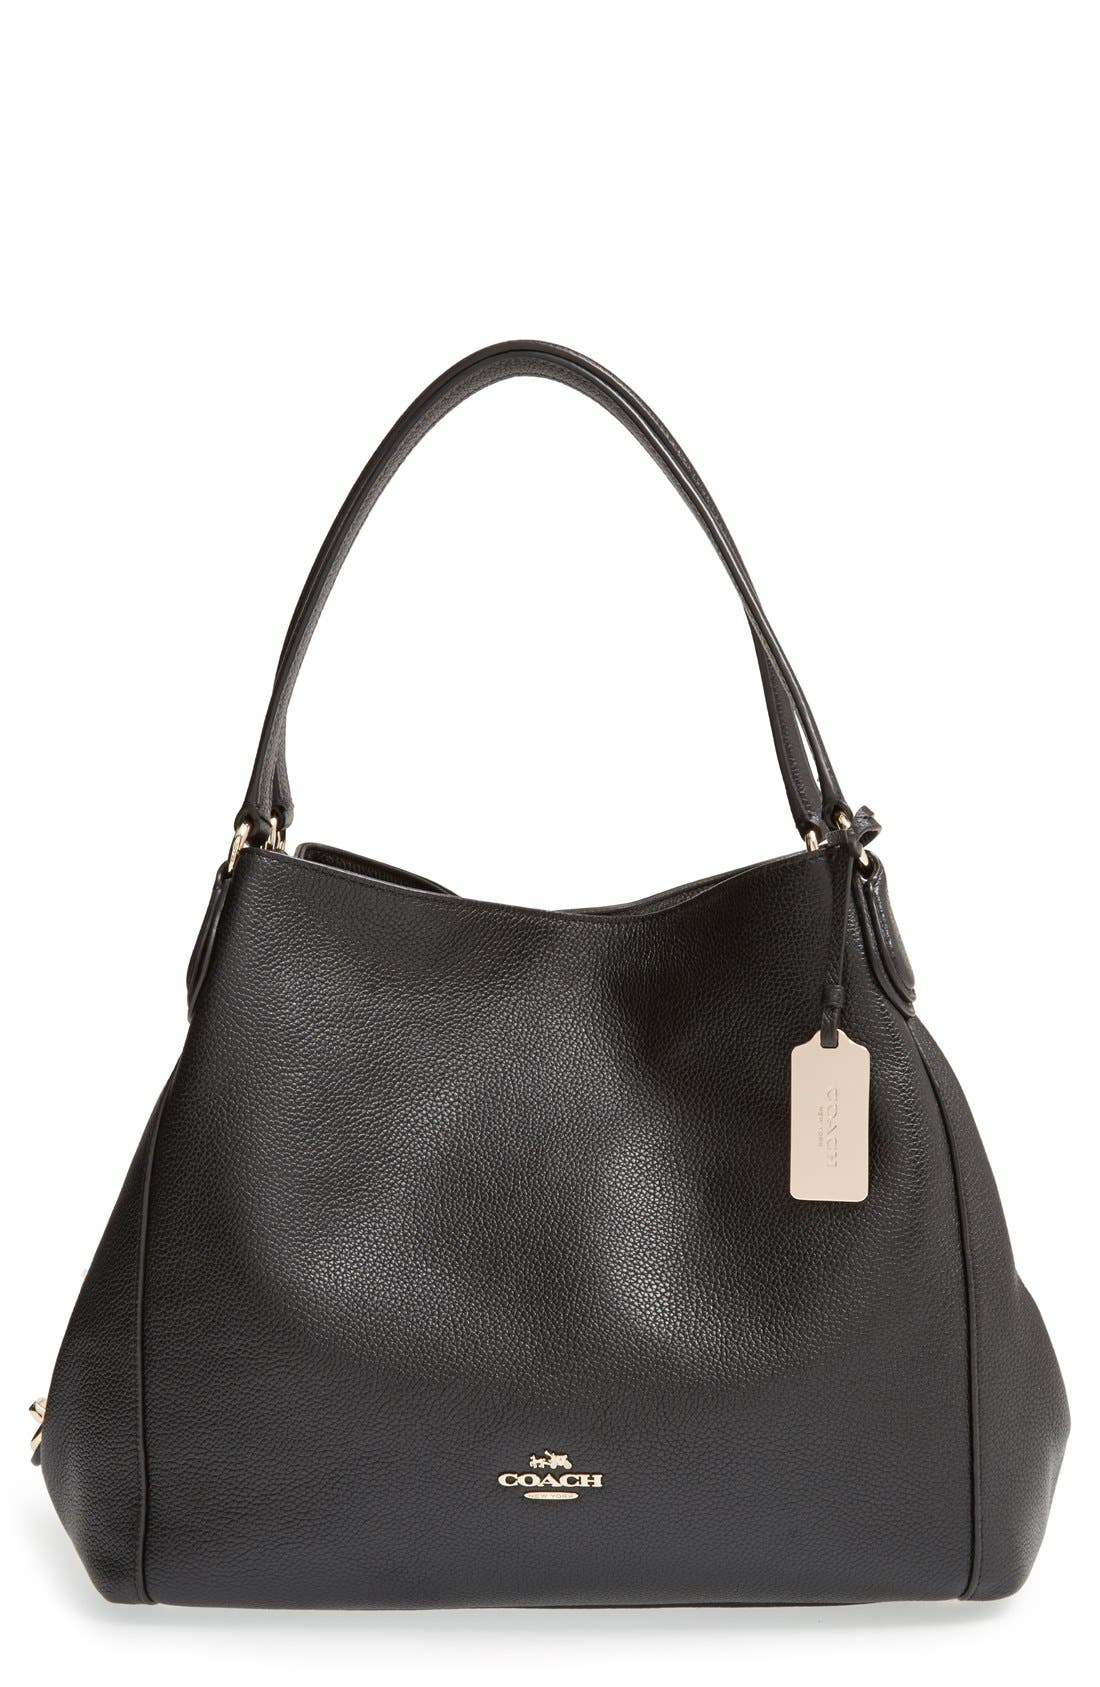 Alternate Image 1 Selected - Coach 'Edie' Pebbled Leather Shoulder Bag